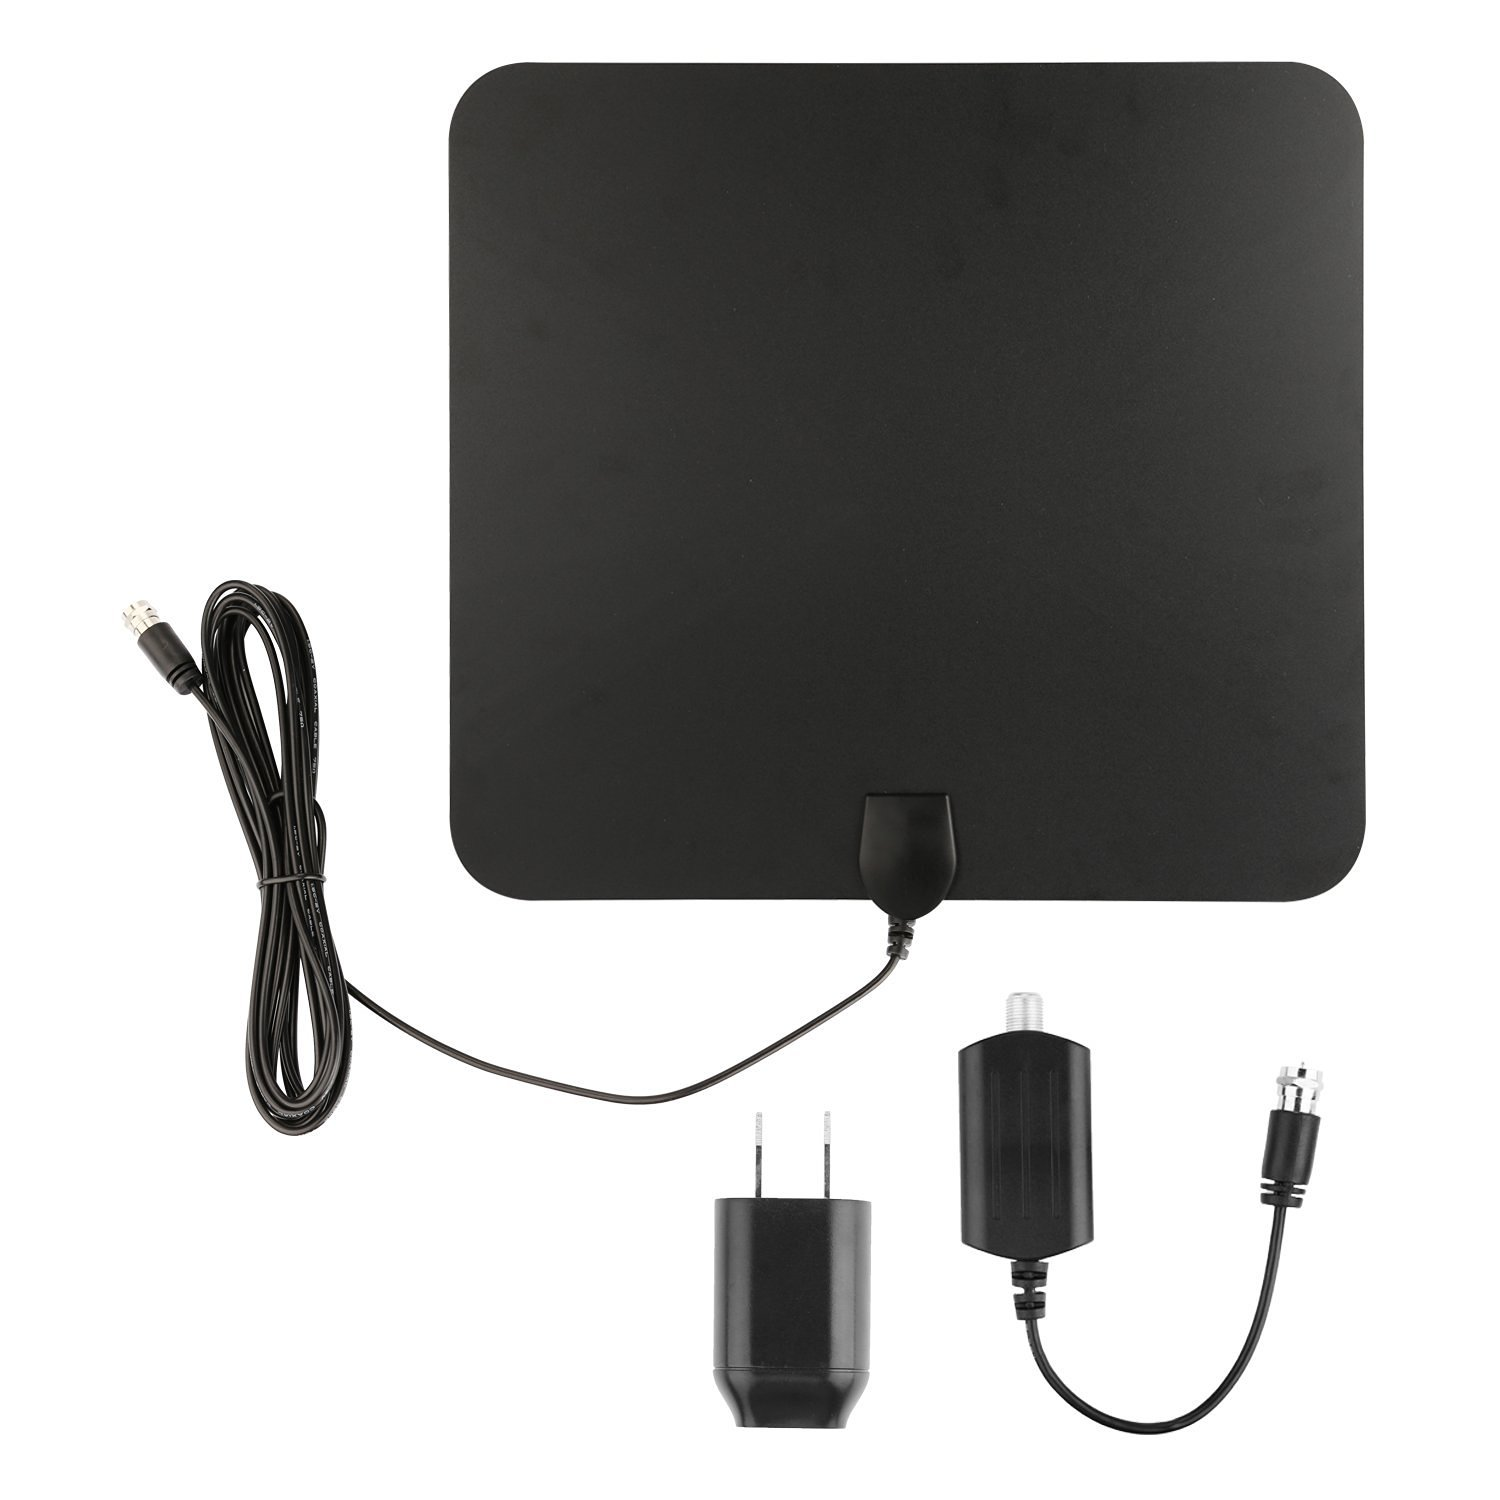 Free digital antenna coupon